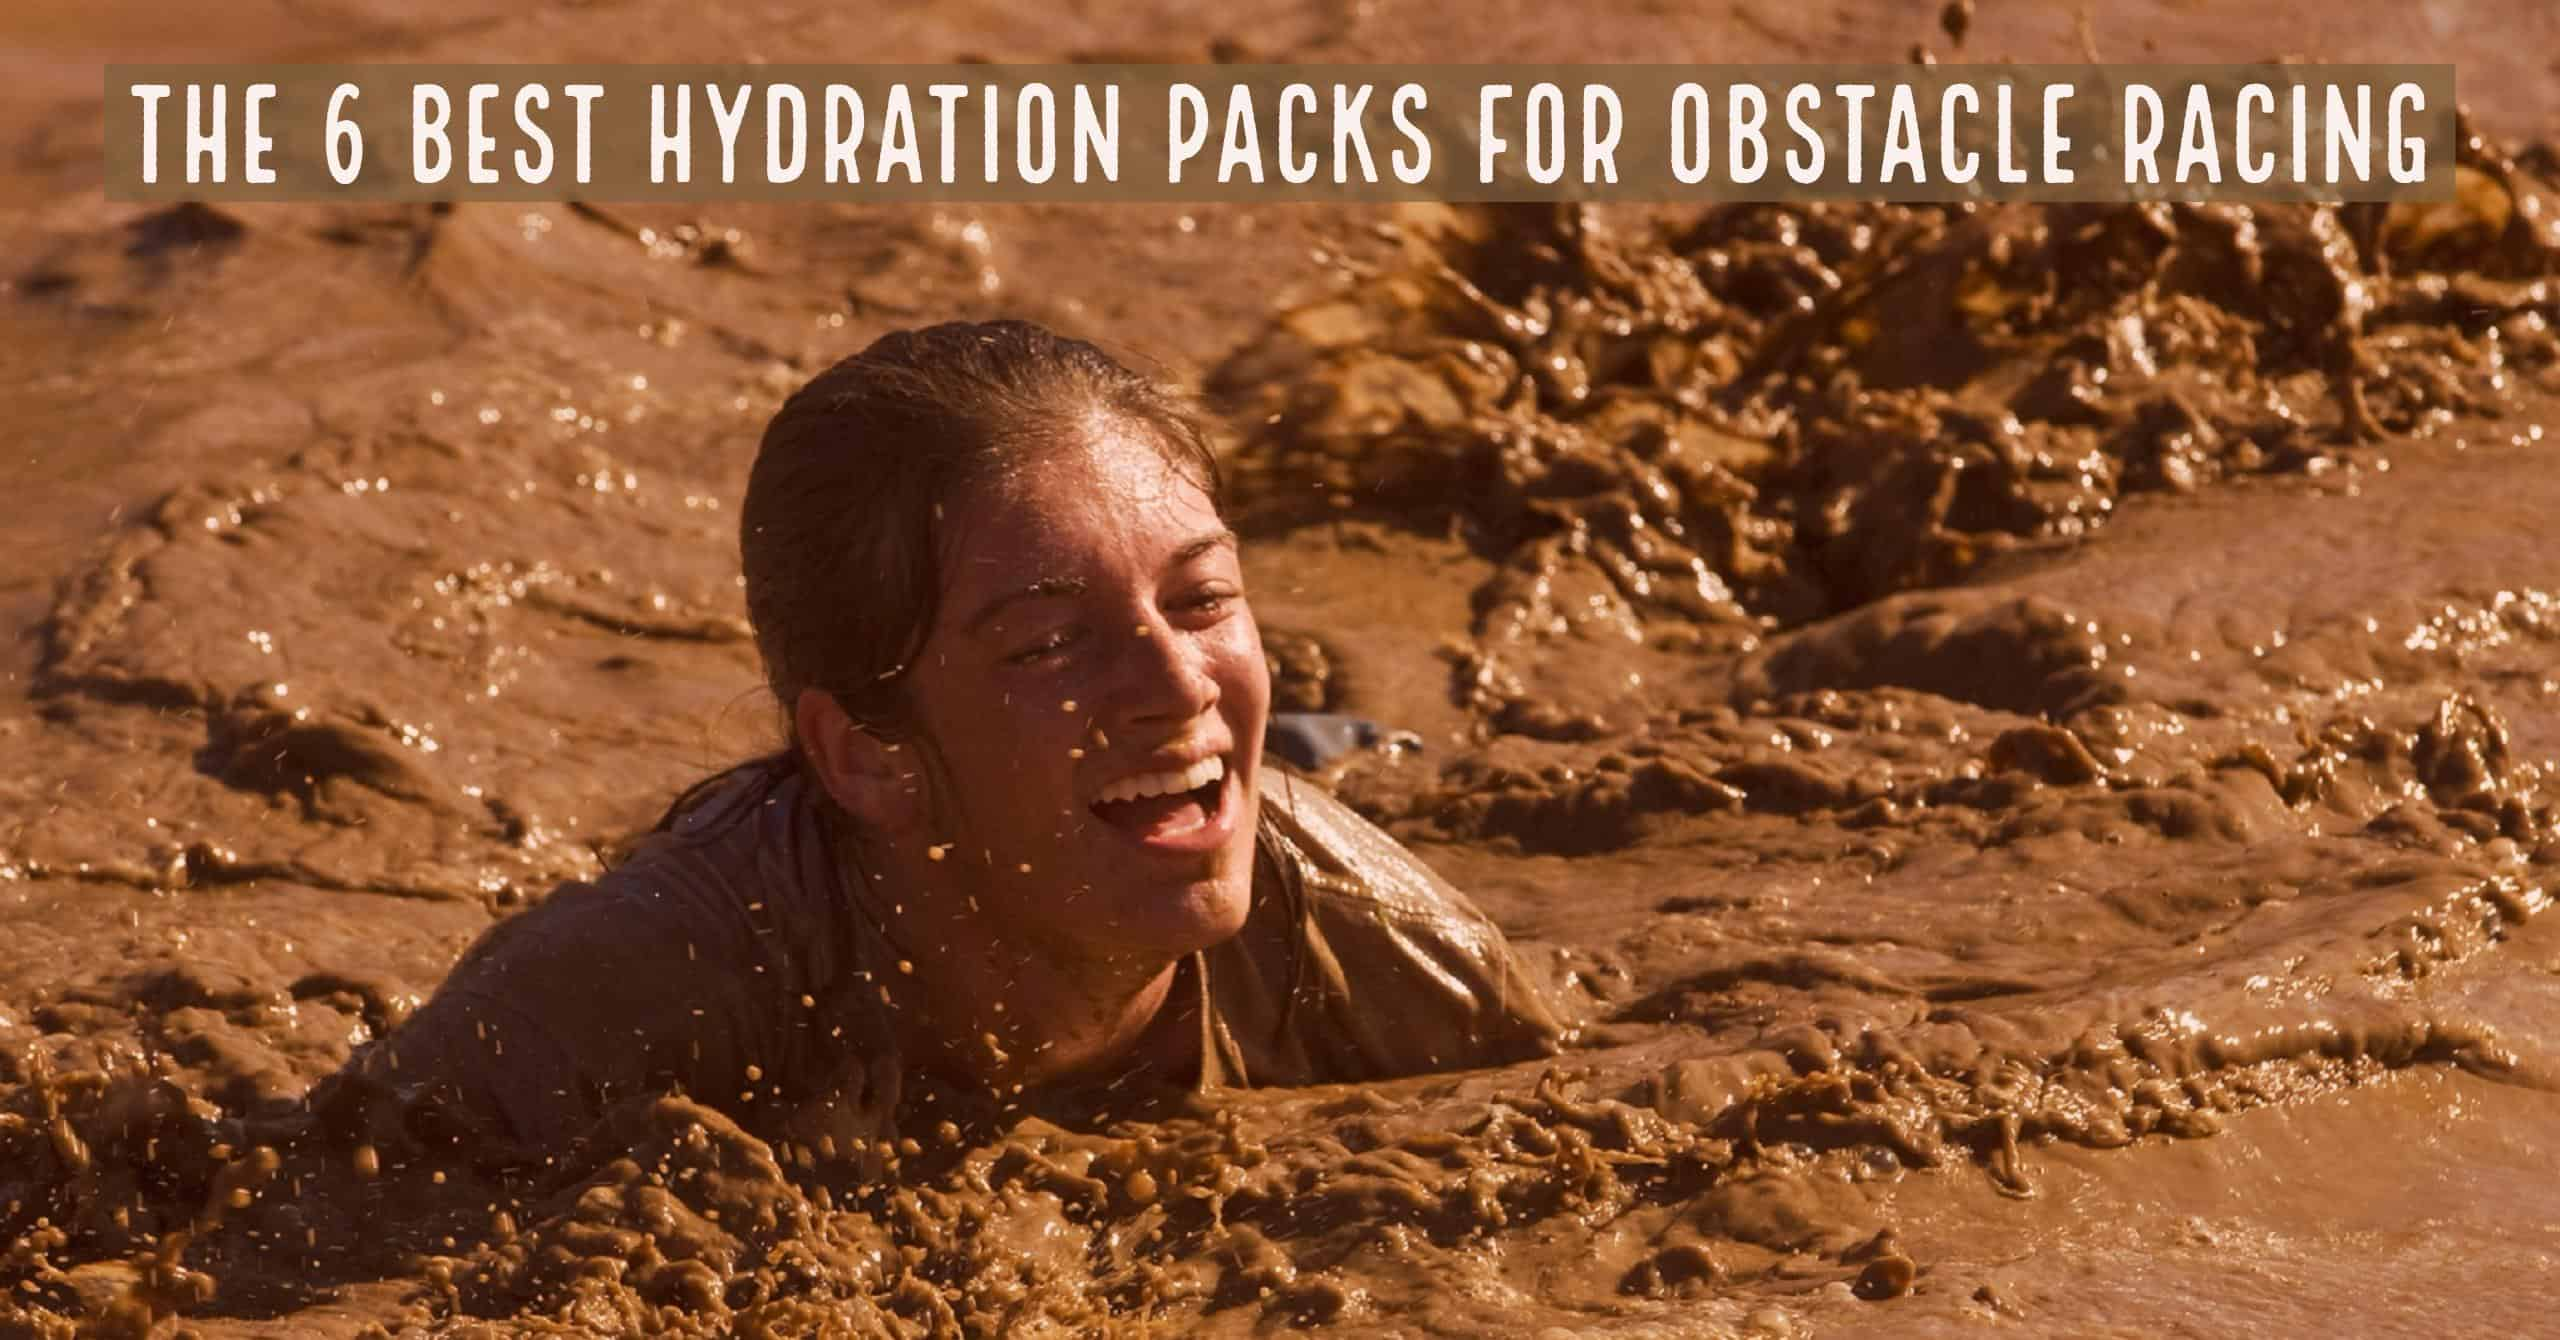 Obstacle races are a ton of fun. From the numerous things you need to jump, crawl and balance to get over. One essential item you will need as your participate is a hydration pack. We break down the 6 best Hydration packs for obstacle racing.